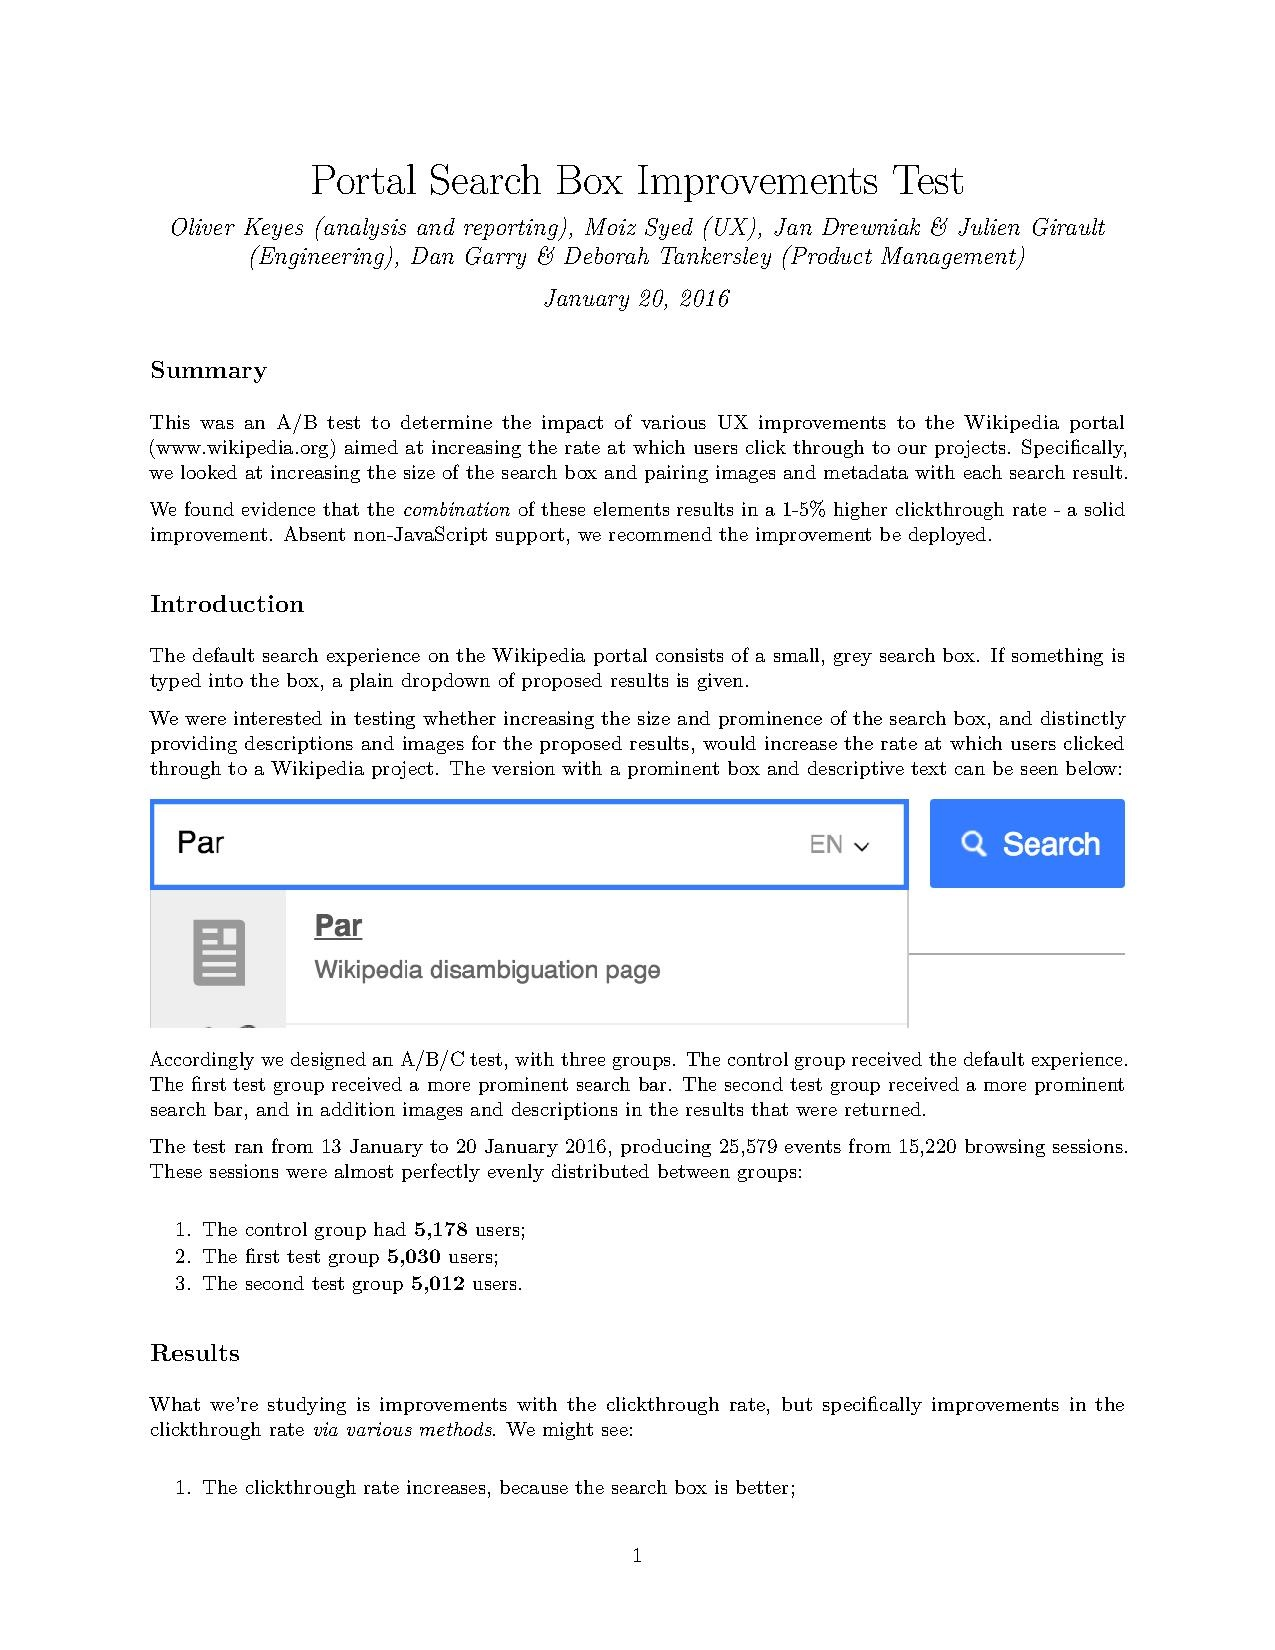 test pdf document multiple pages